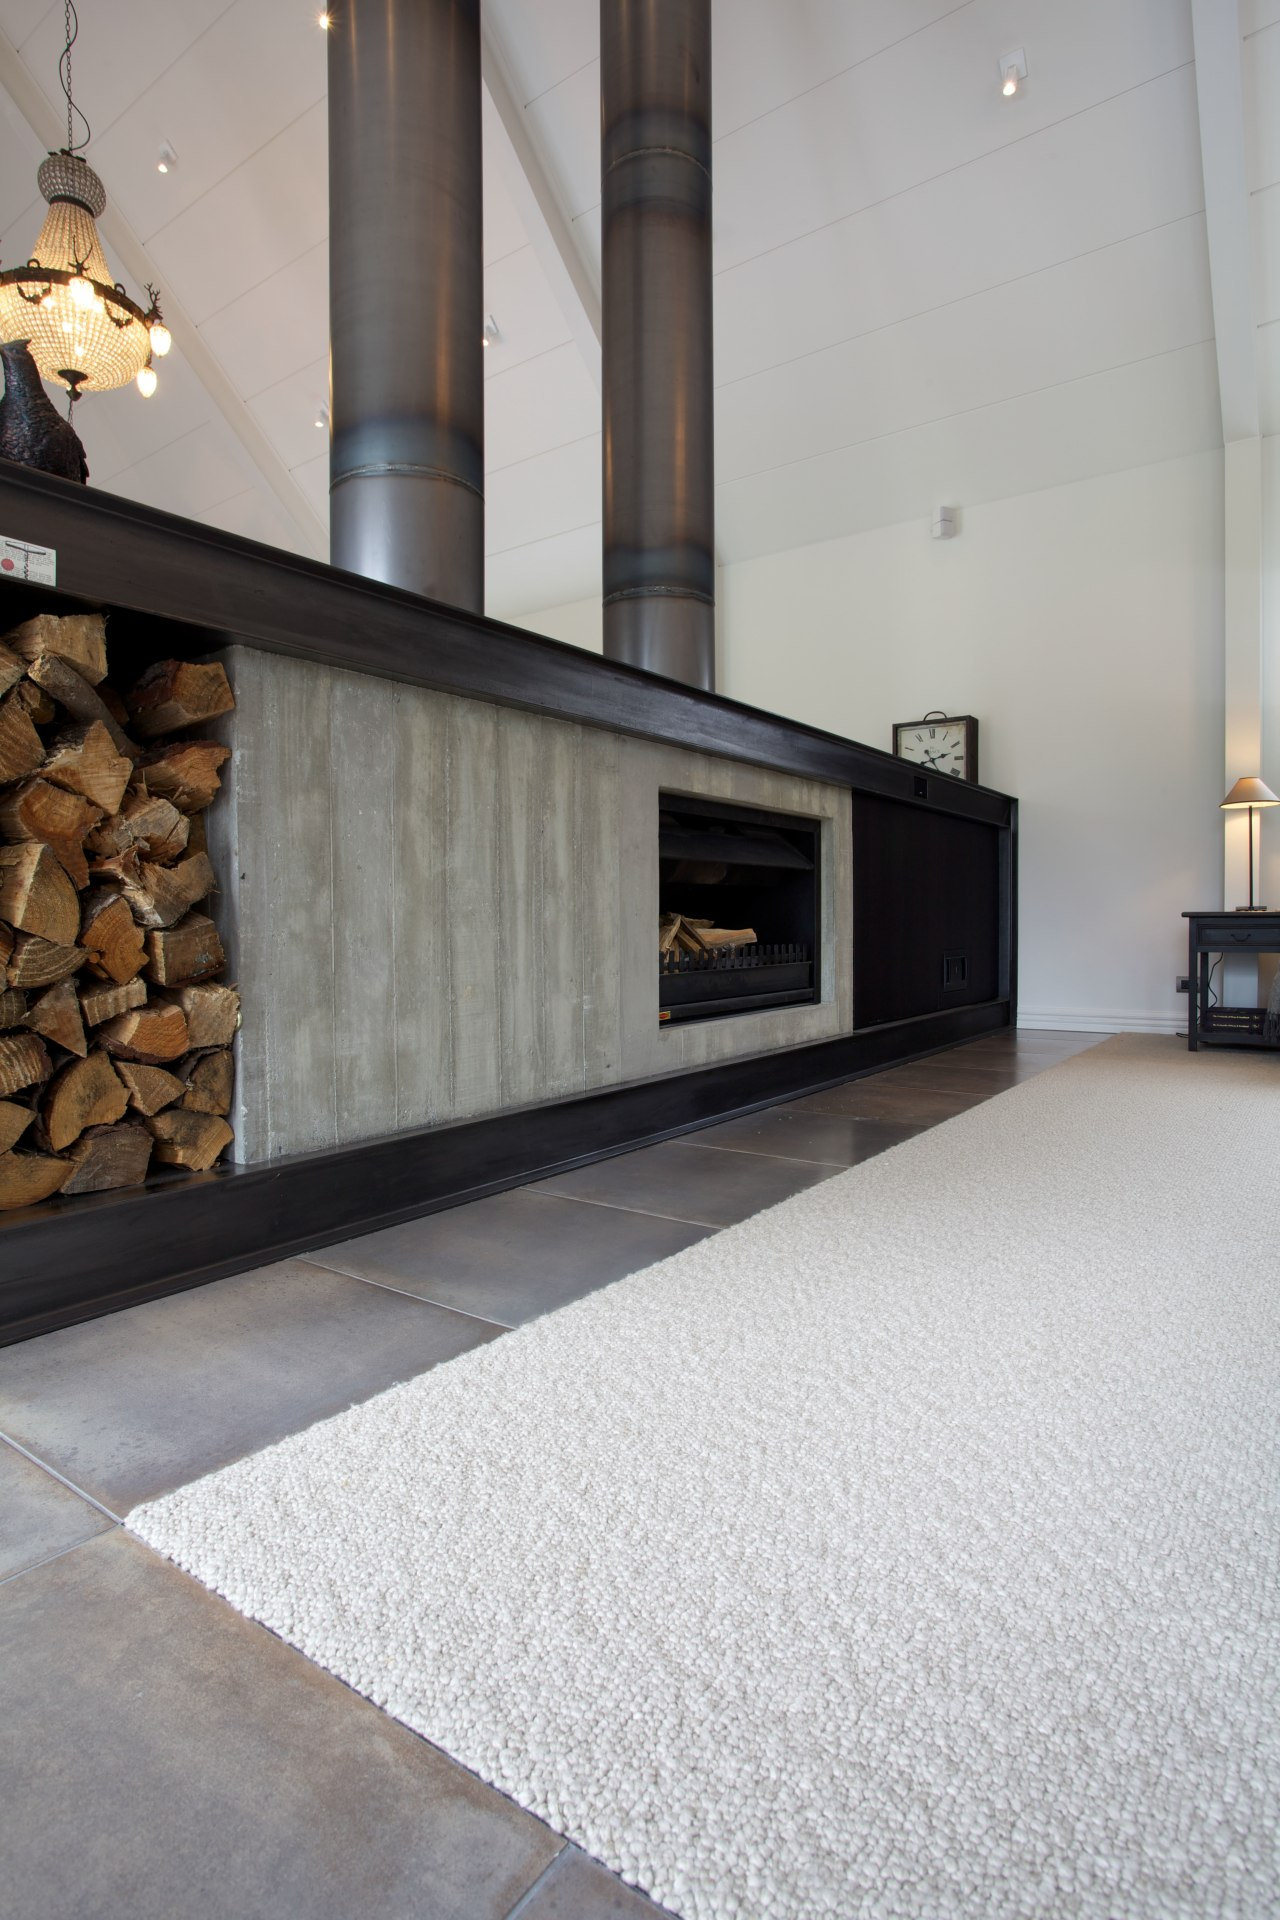 Pure New Zealand lambswool provides a soft, comfortable fireplace, floor, flooring, hearth, interior design, living room, tile, wood flooring, gray